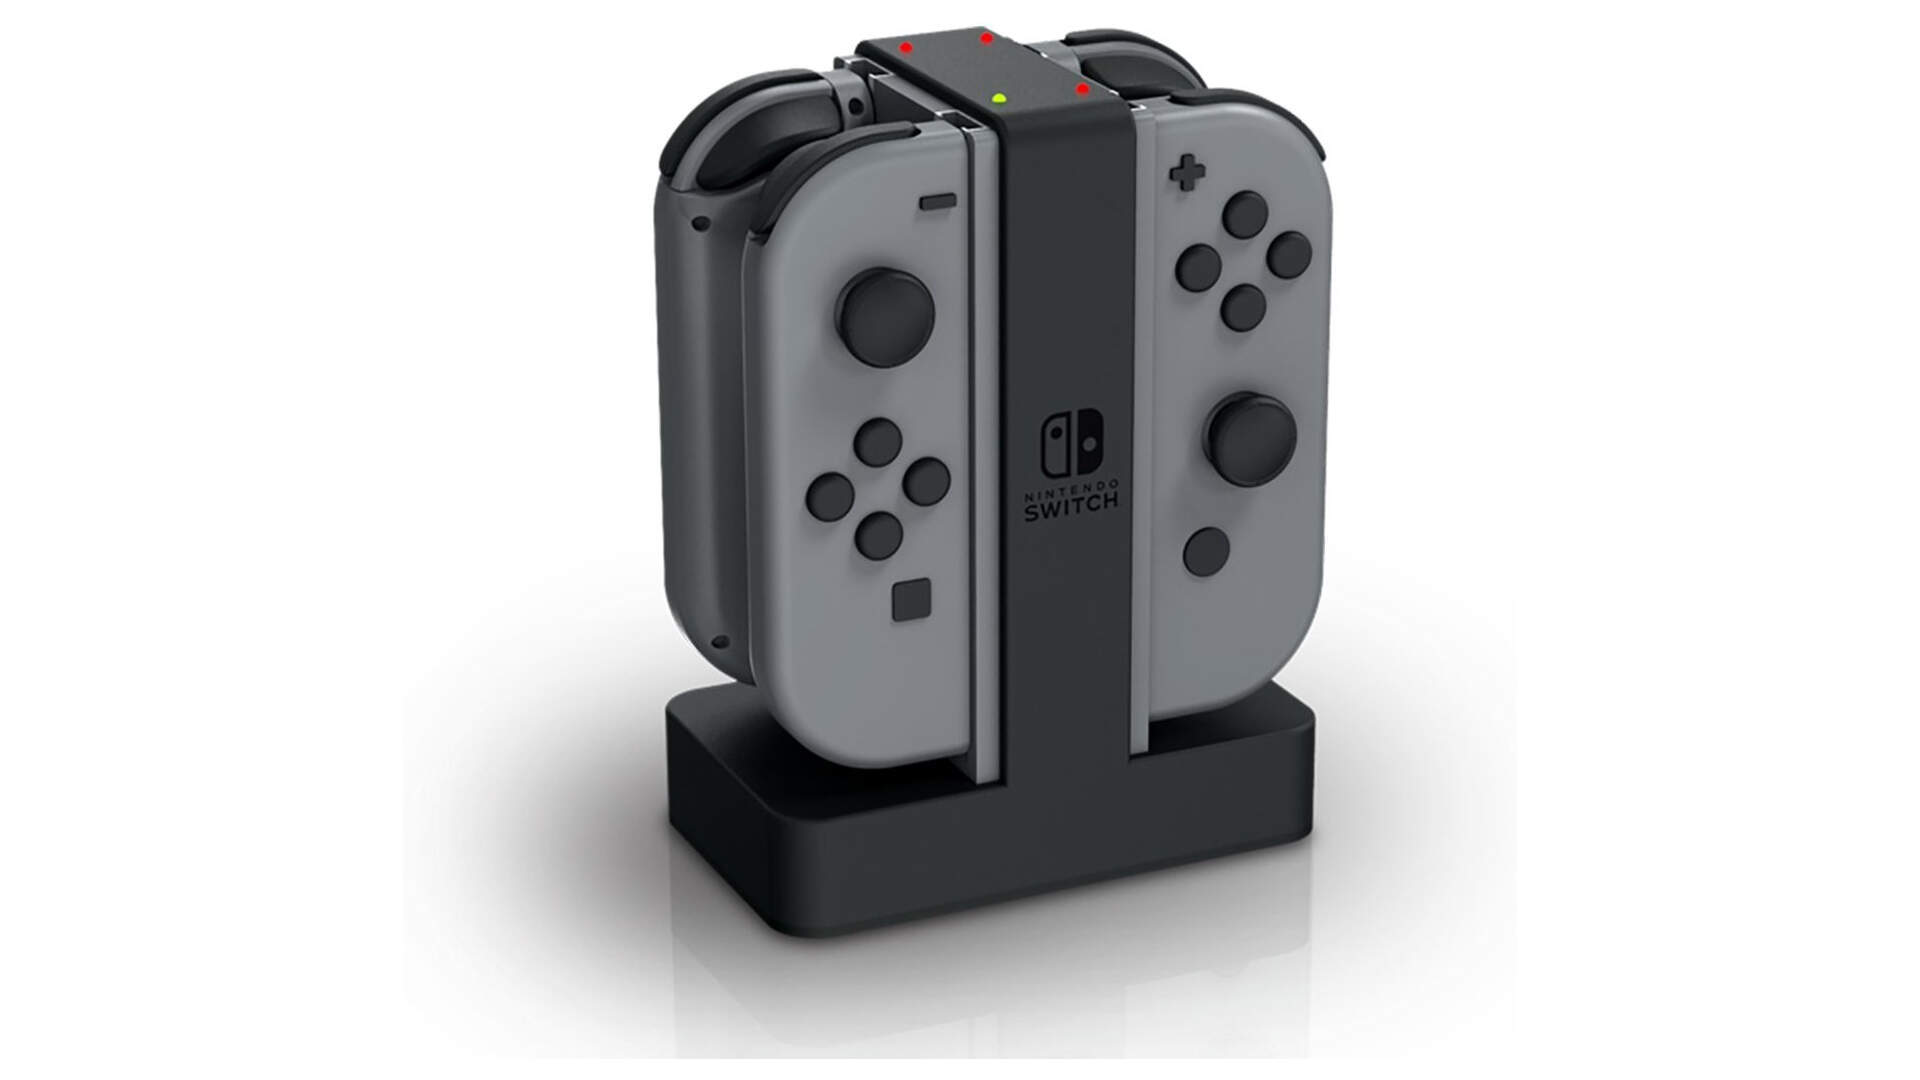 Amazon offering a Nintendo Switch JoyCon charging dock for less than $18 in Year End deals